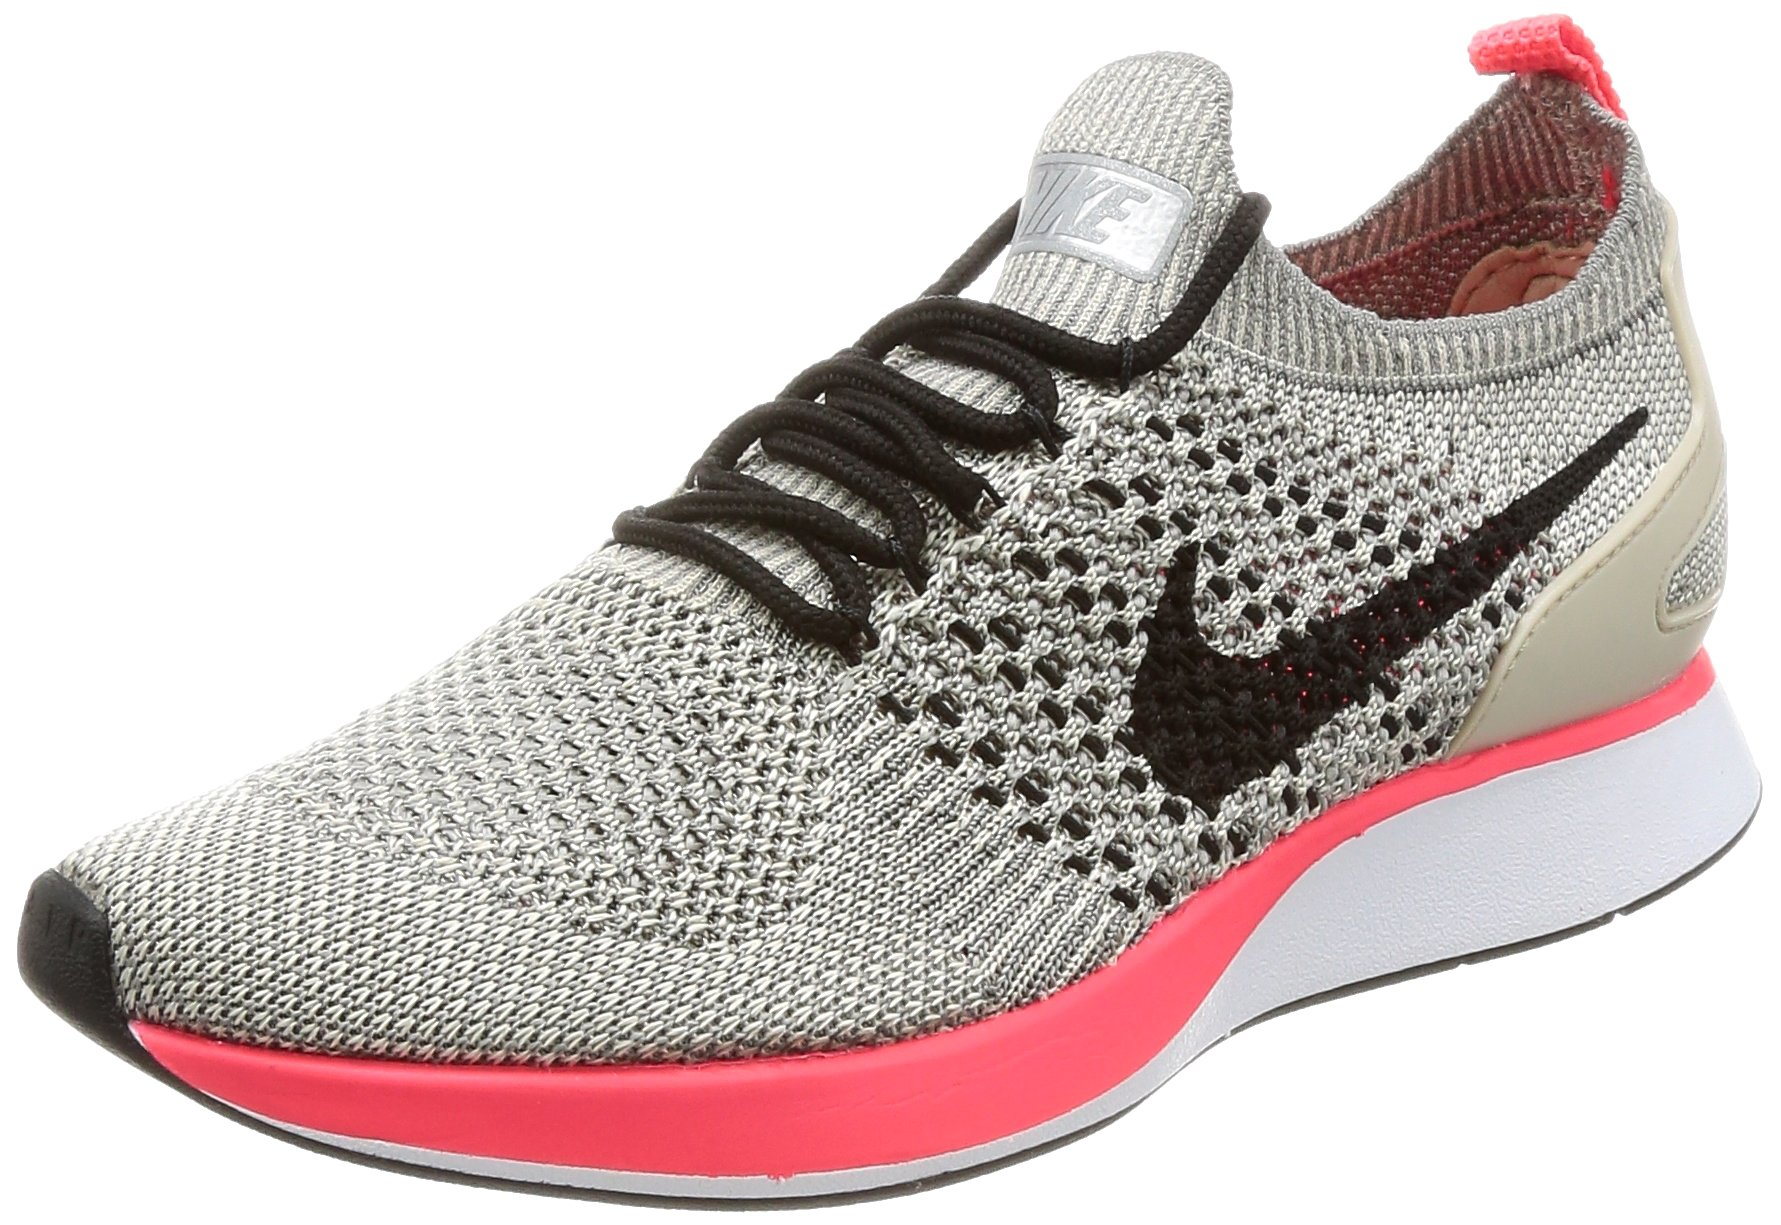 105b7231a63 Galleon - NIKE Women Air Zoom Mariah Flyknit Racer String Black-White-Solar  Red Size 7.5 US